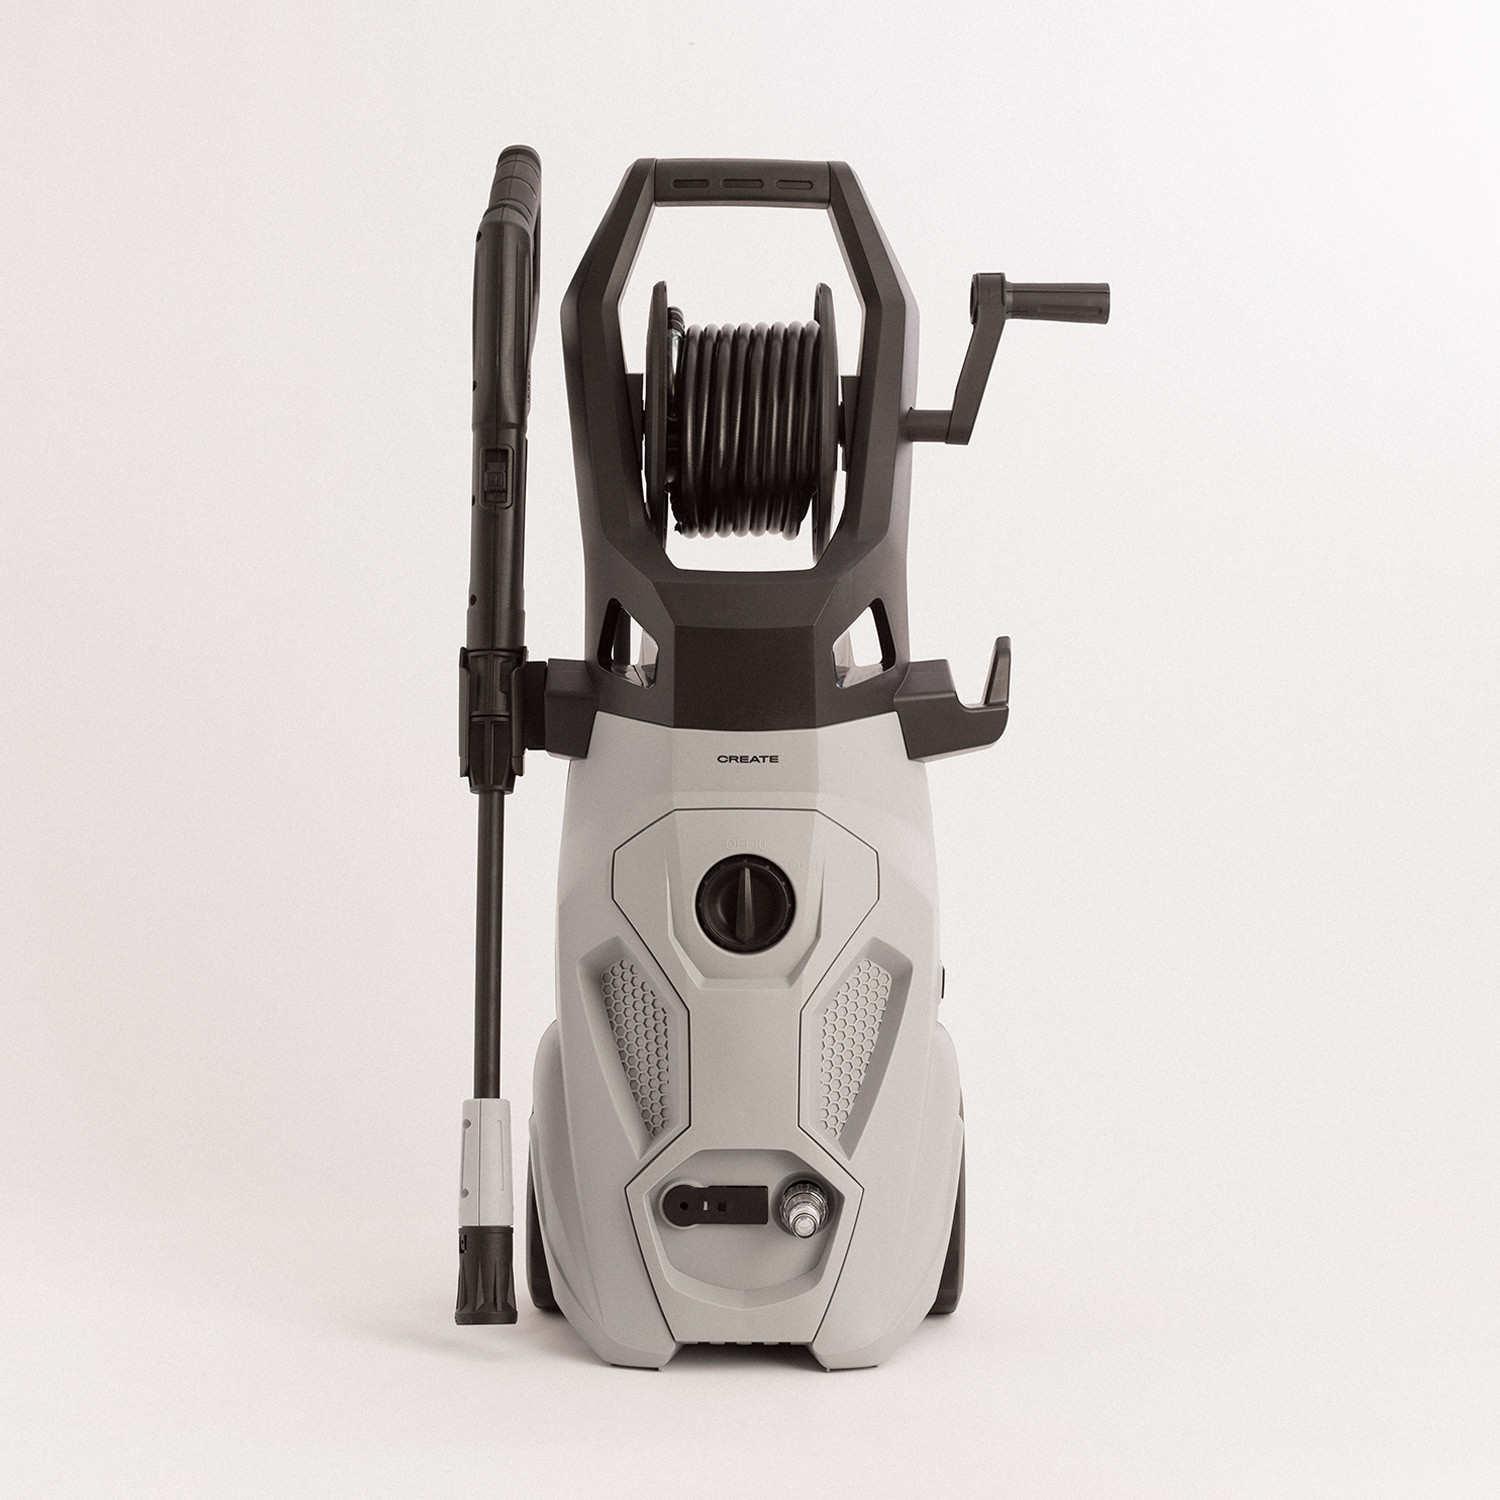 JET WASHER - 2200W High Pressure Washer for outdoors and vehicles, imagen de galería 1